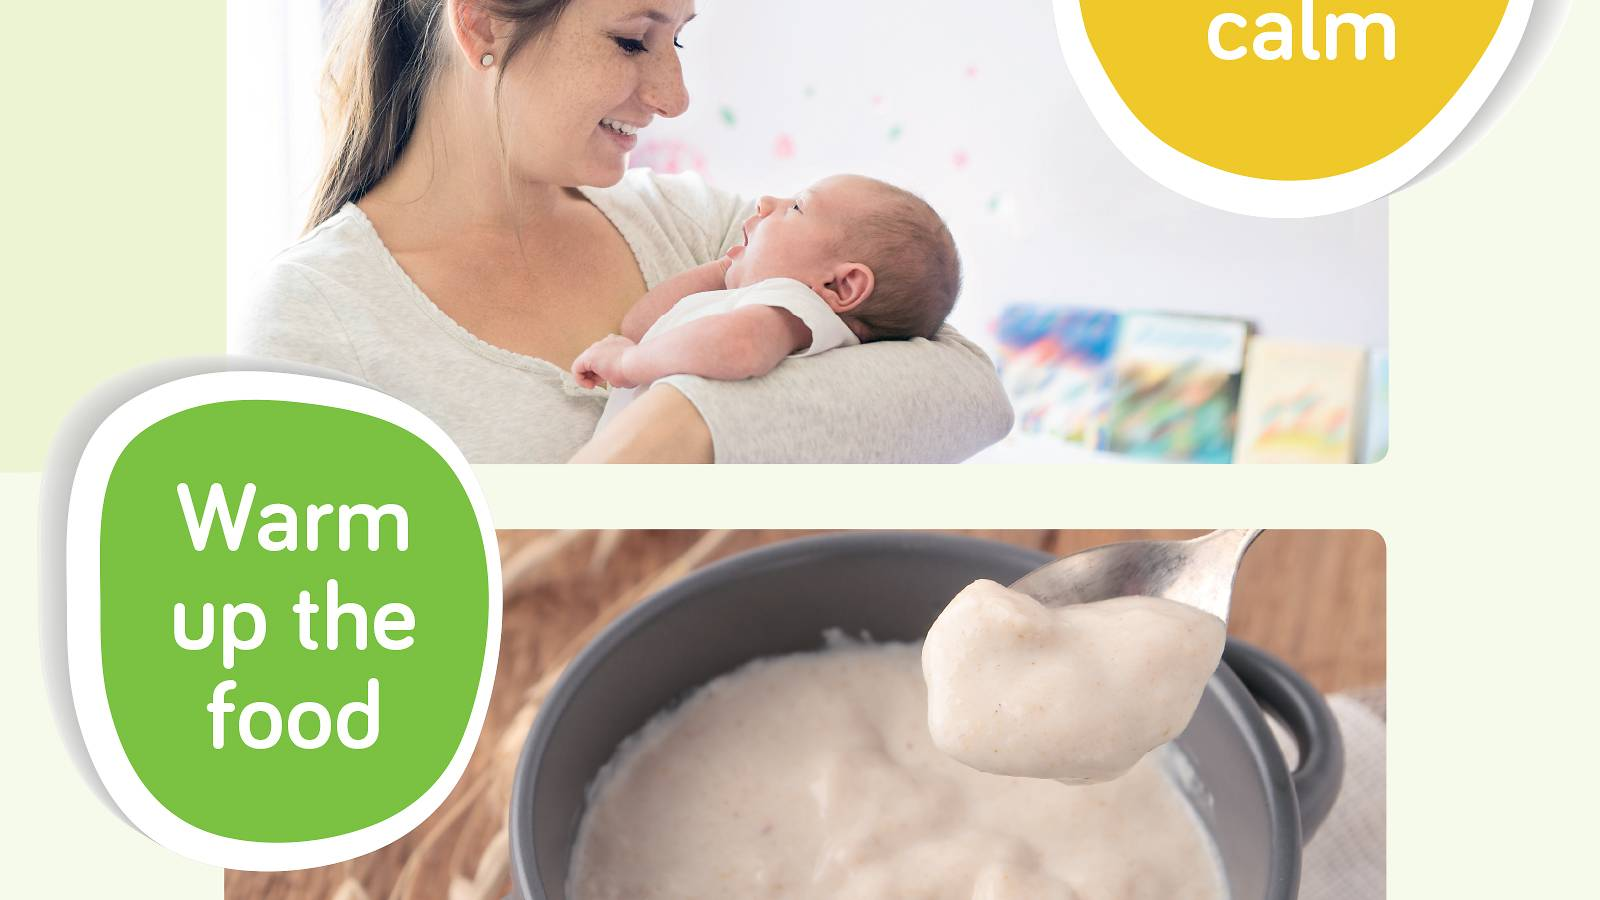 Babies-6-easy-tips-to-wean-baby-successfully-[Infographic]_02